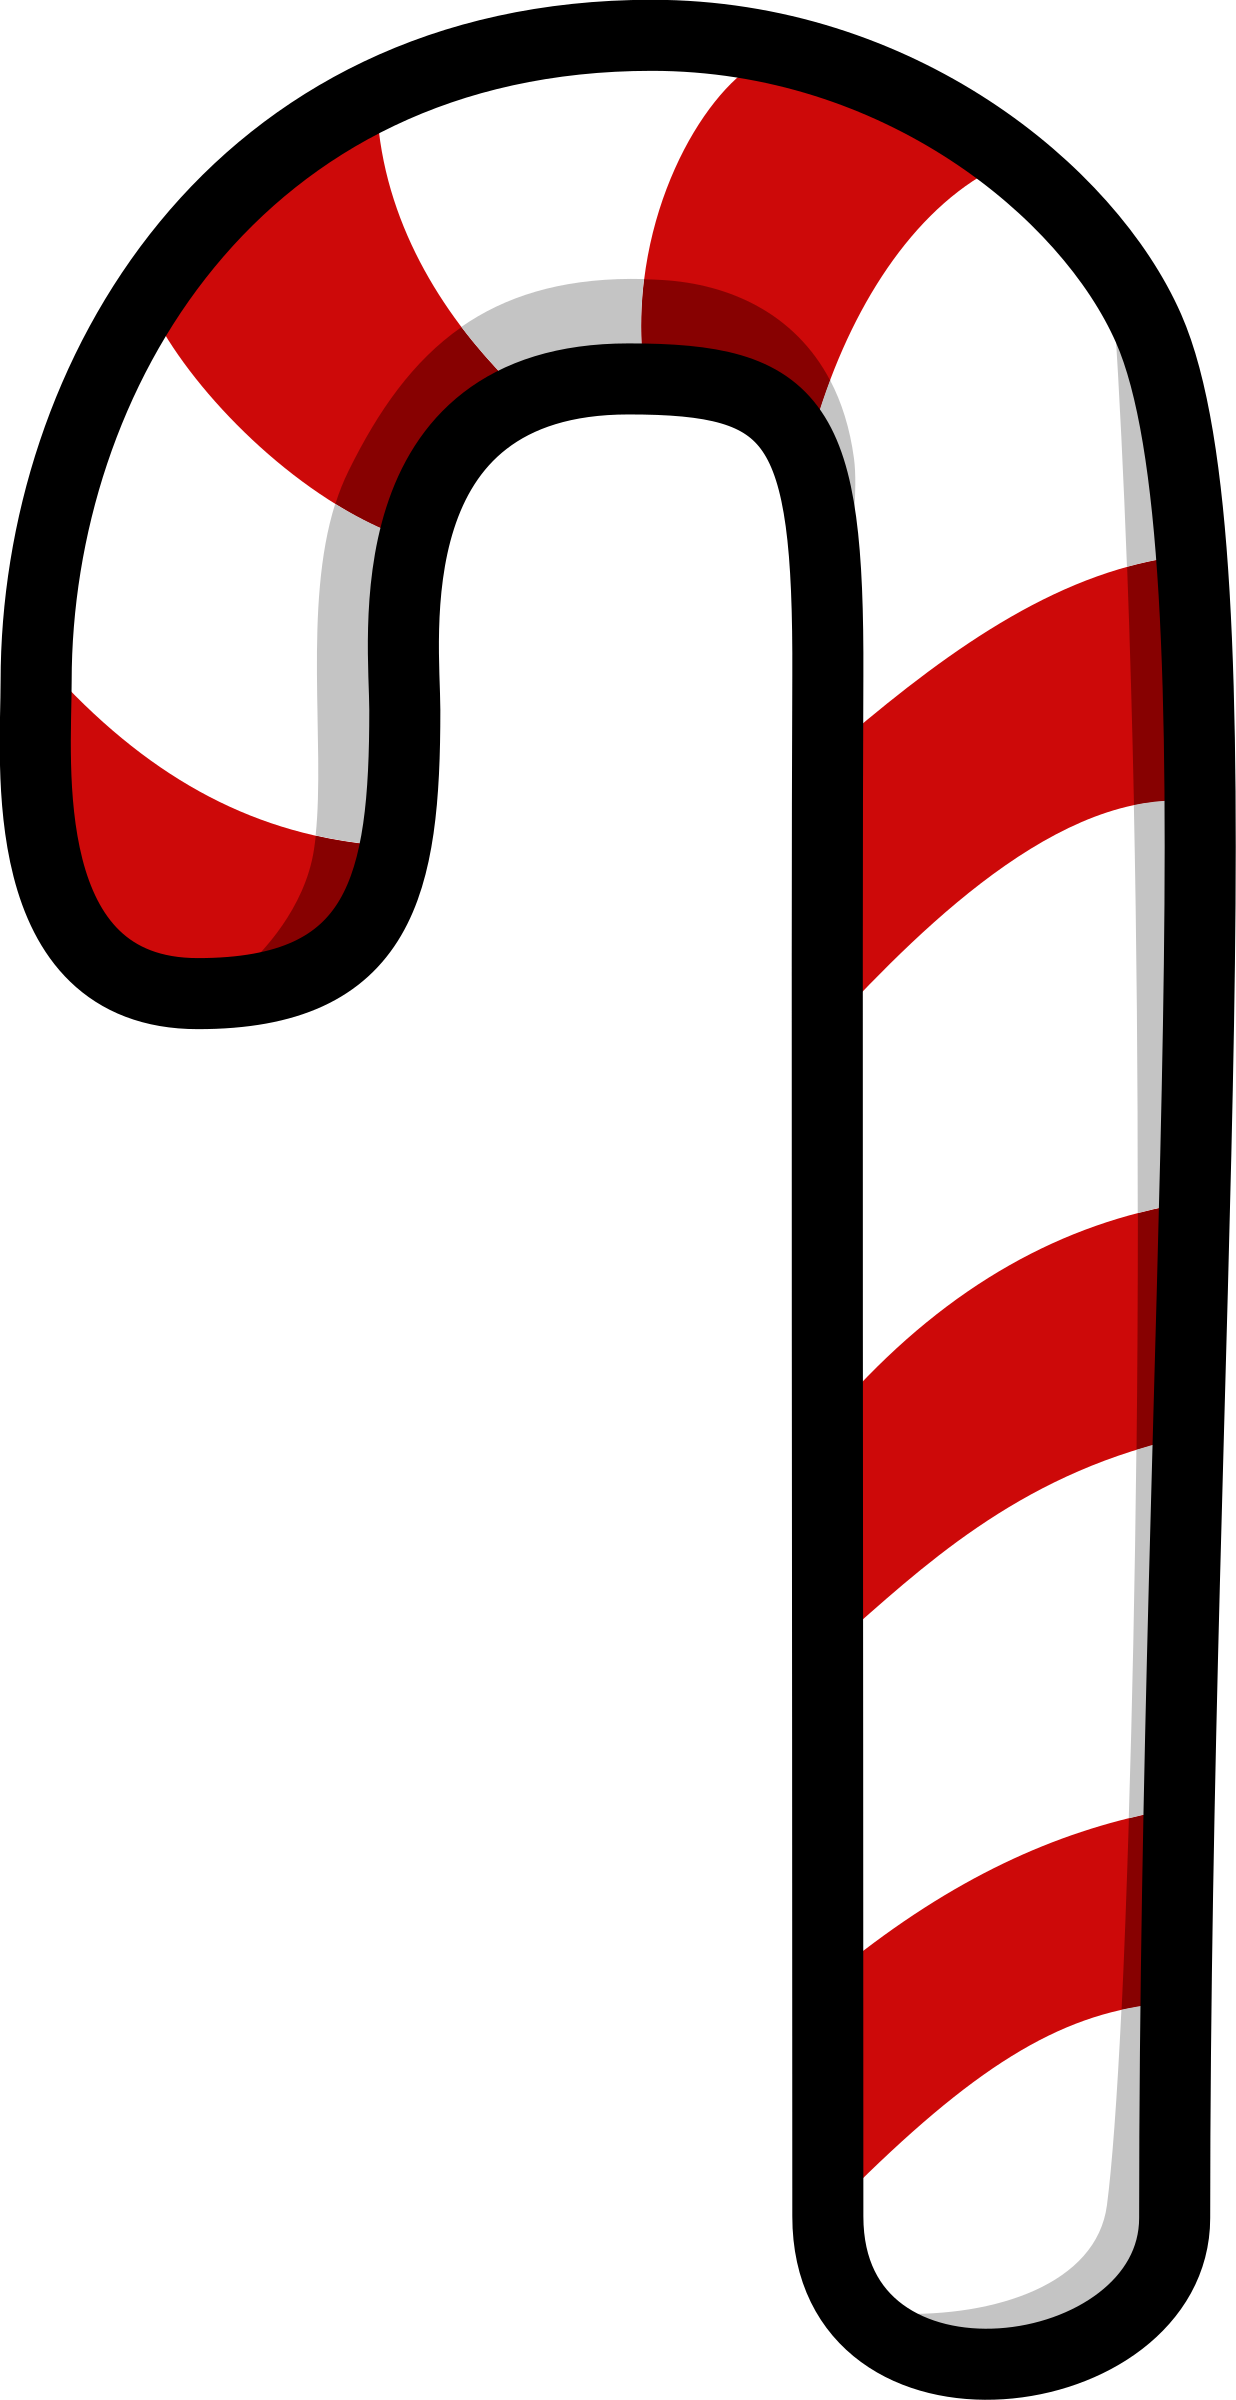 ... Clipart - Candy Cane ...-... Clipart - Candy Cane ...-13